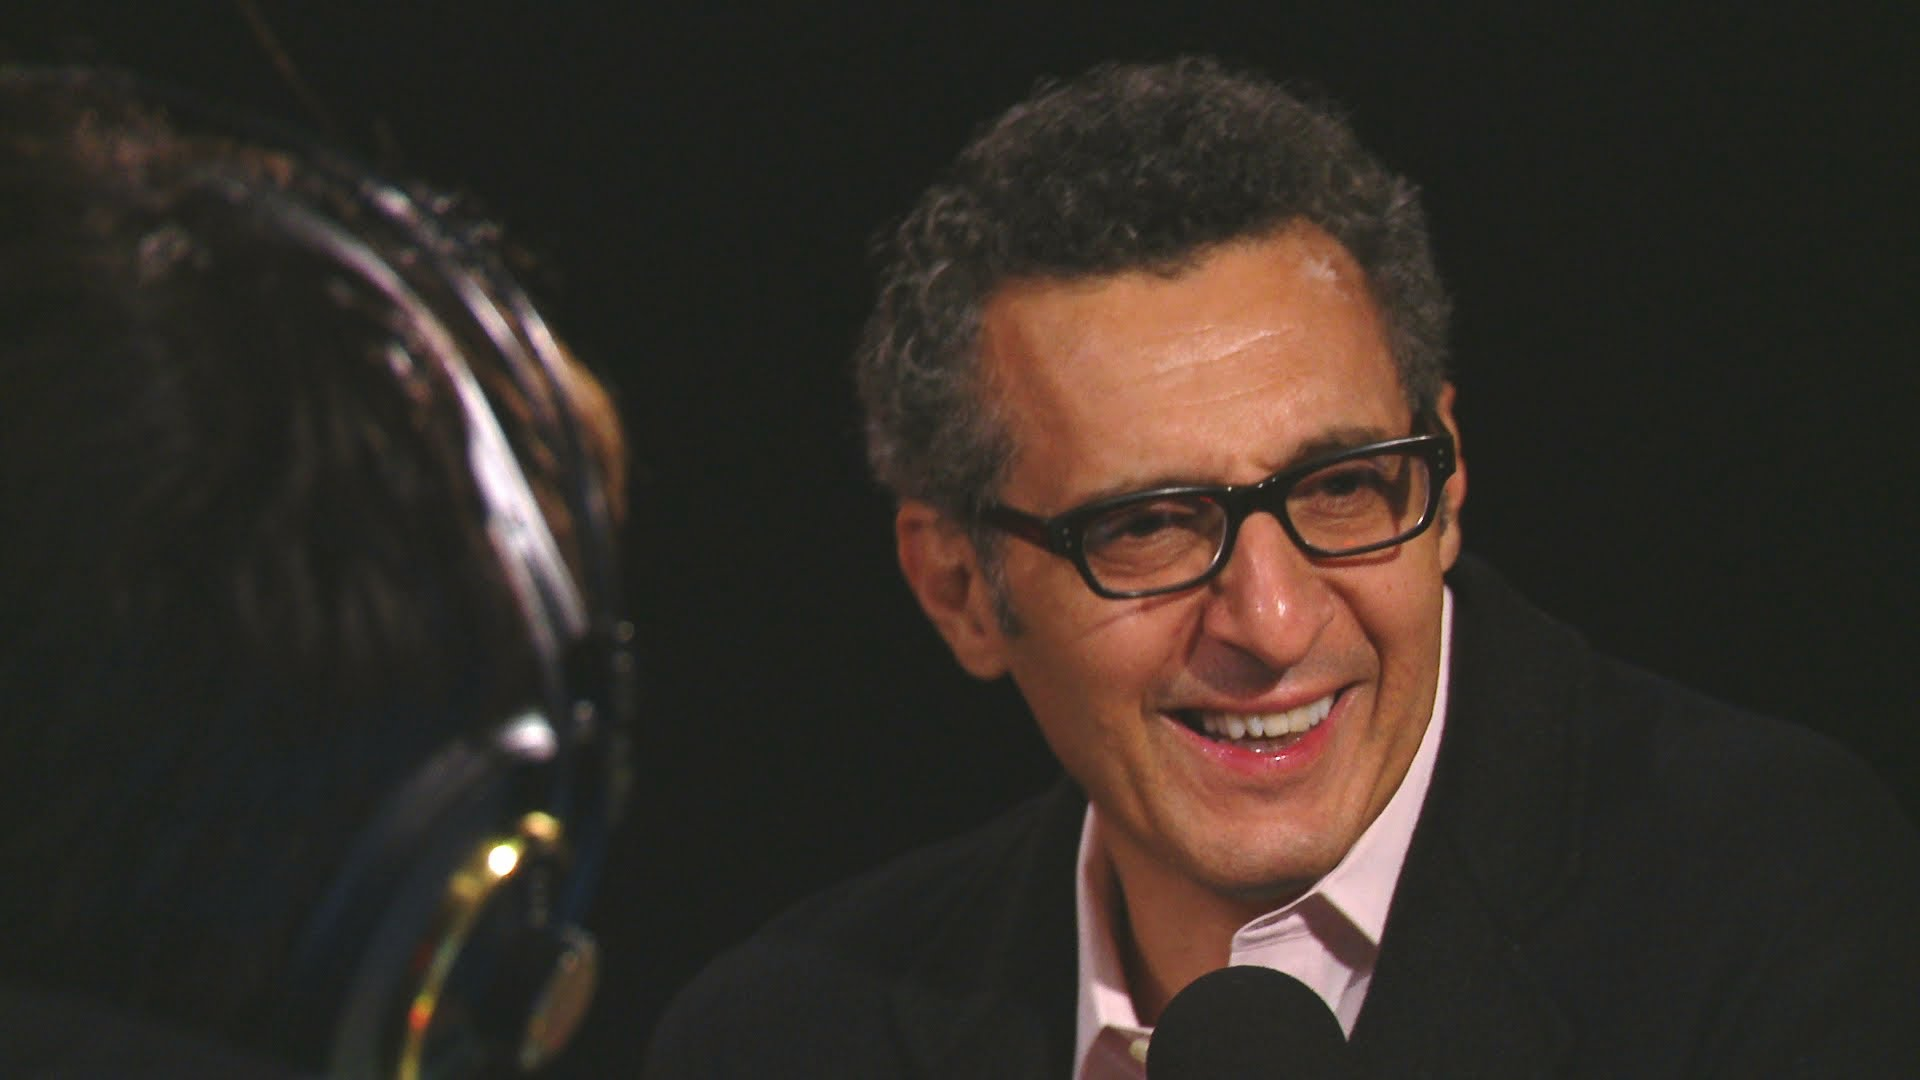 John Turturro Wallpapers hd